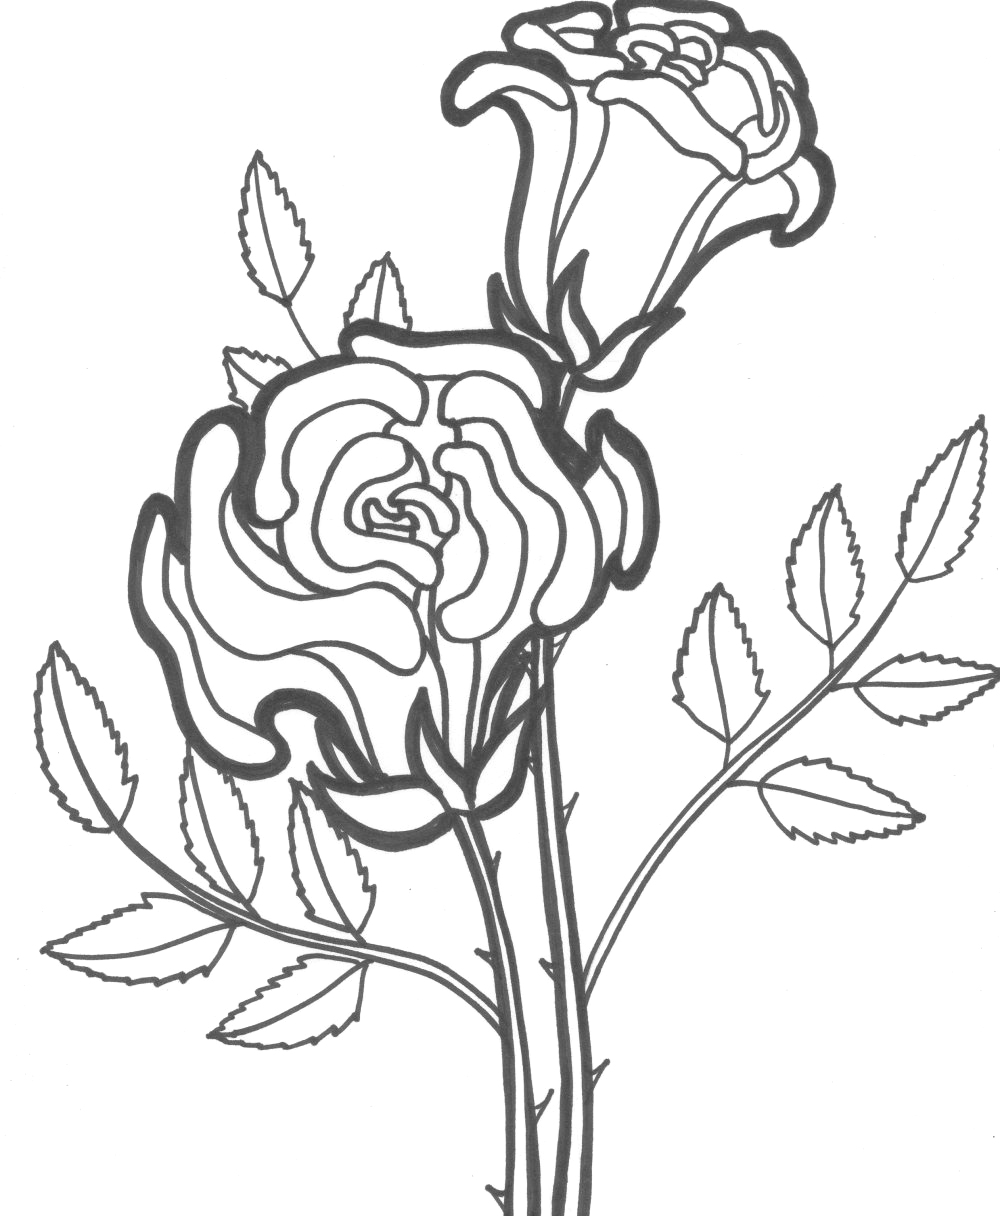 free printable rose coloring pages roses coloring pages to download and print for free coloring rose free printable pages